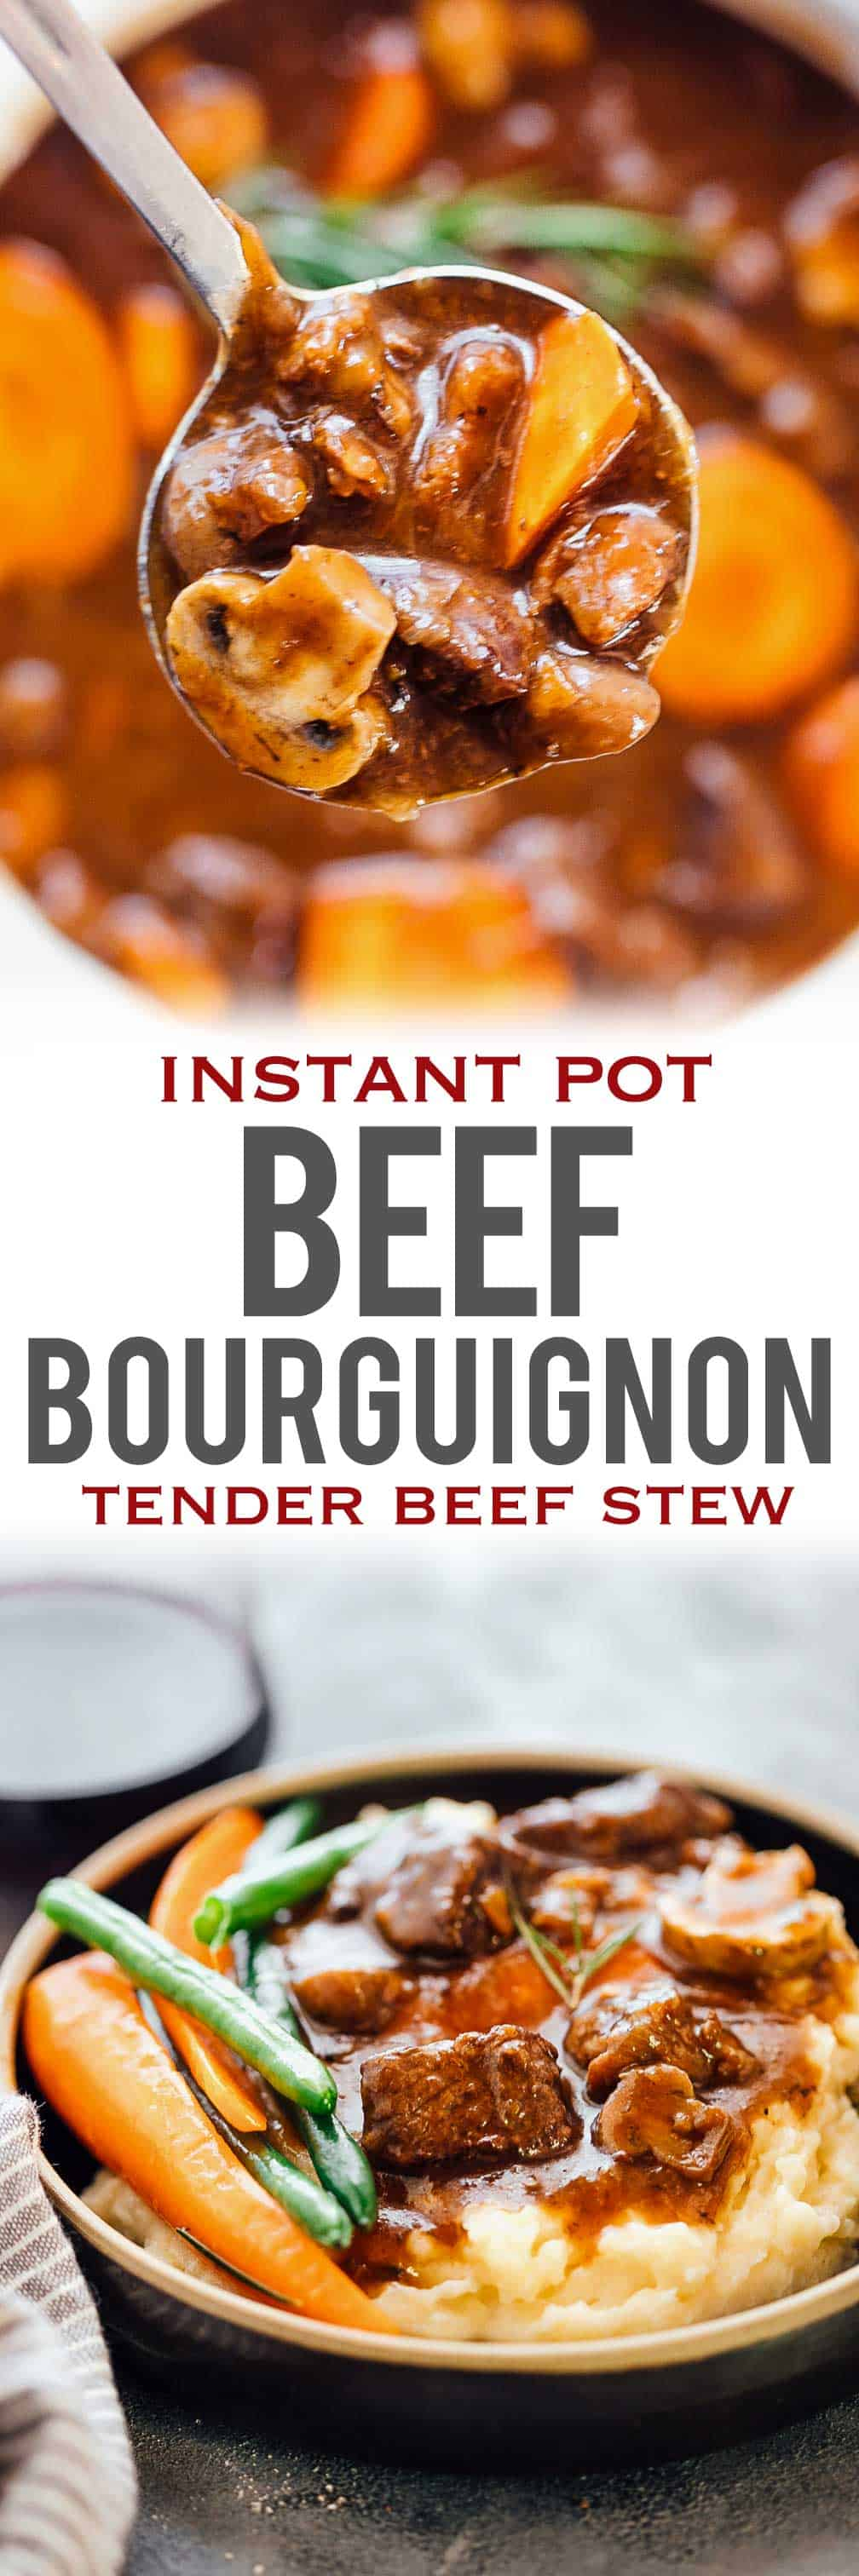 This INSTANT POT BEEF BOURGUIGNON has all the right flavours is inspired by Julia Child\'s beef stew with red wine and has tender, fall apart beef chunks. This is a french recipe that\'s easy, and tastes best with sides like mashed potatoes, roasted potatoes and beans. Use the Instant Pot to cut down the cooking time by half, but keep all the flavours intact.